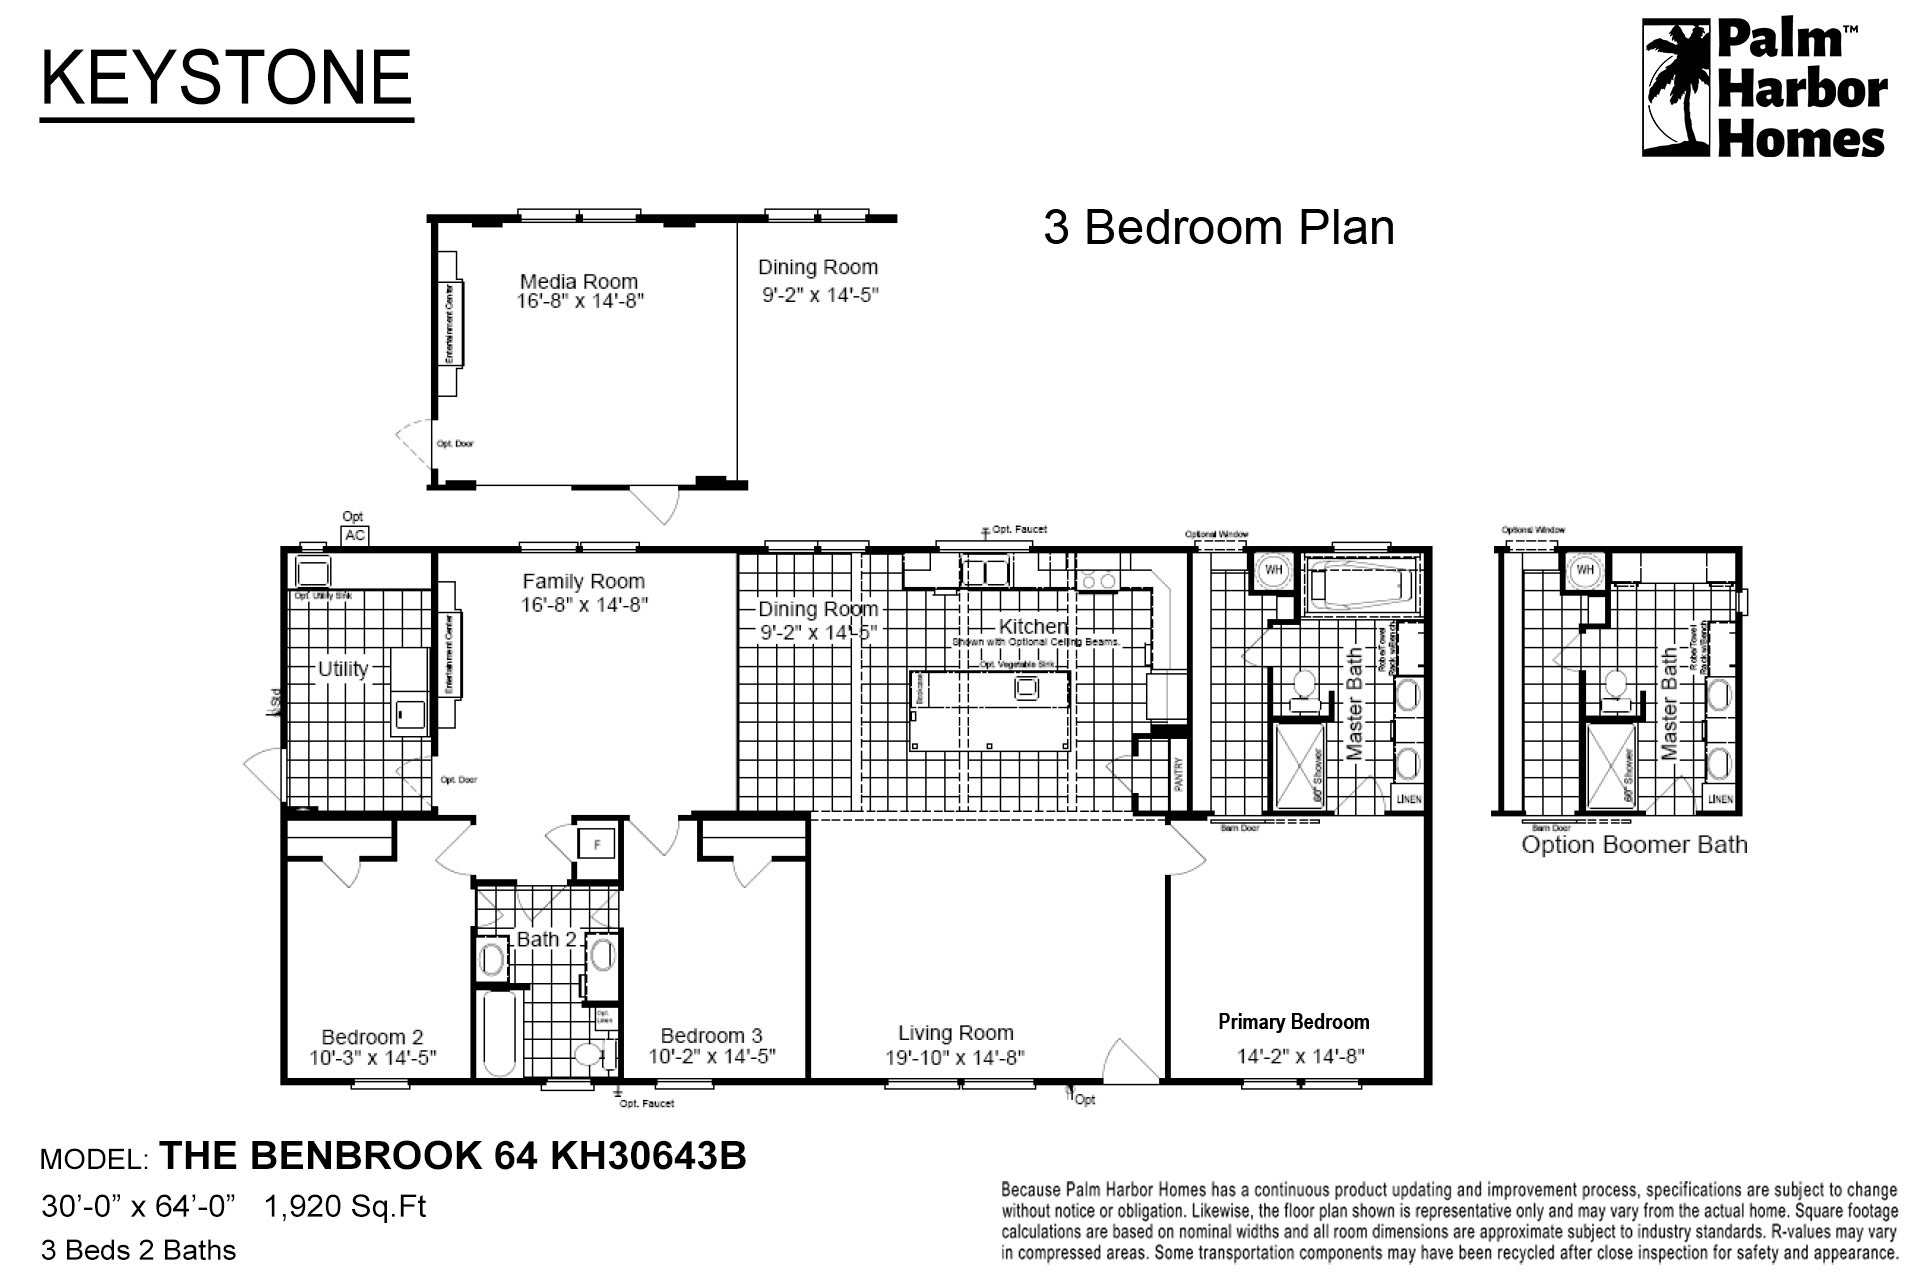 Keystone - The Benbrook 64 KH30643B